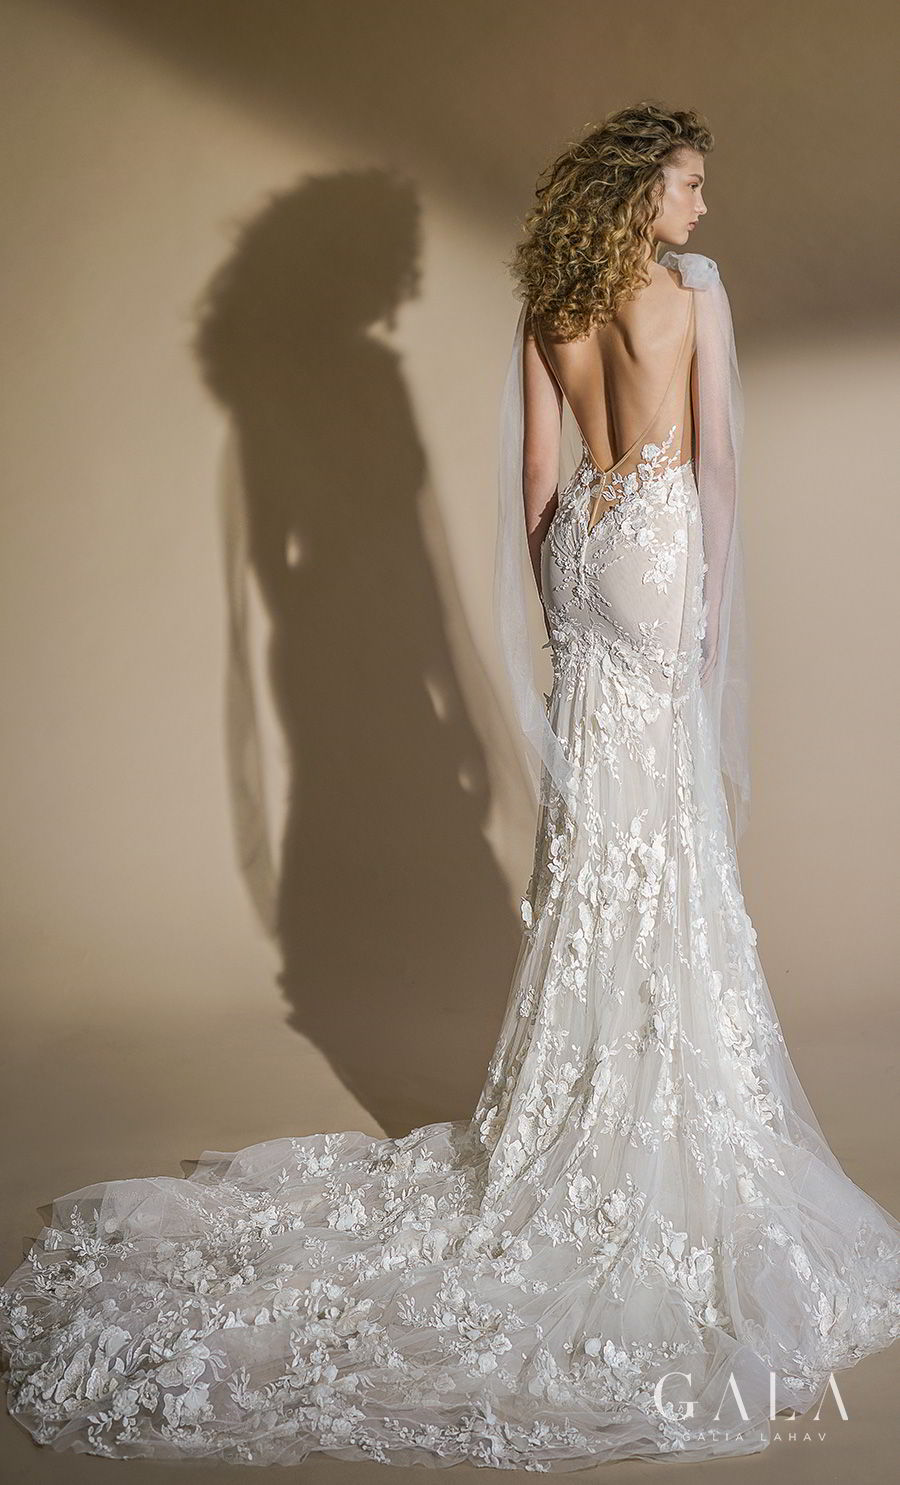 galia lahav gala 2019 bridal sleeveless with strap deep plunging v neck full embellishment sexy romantic trumpet mermaid wedding dress low open back chapel train (104) bv